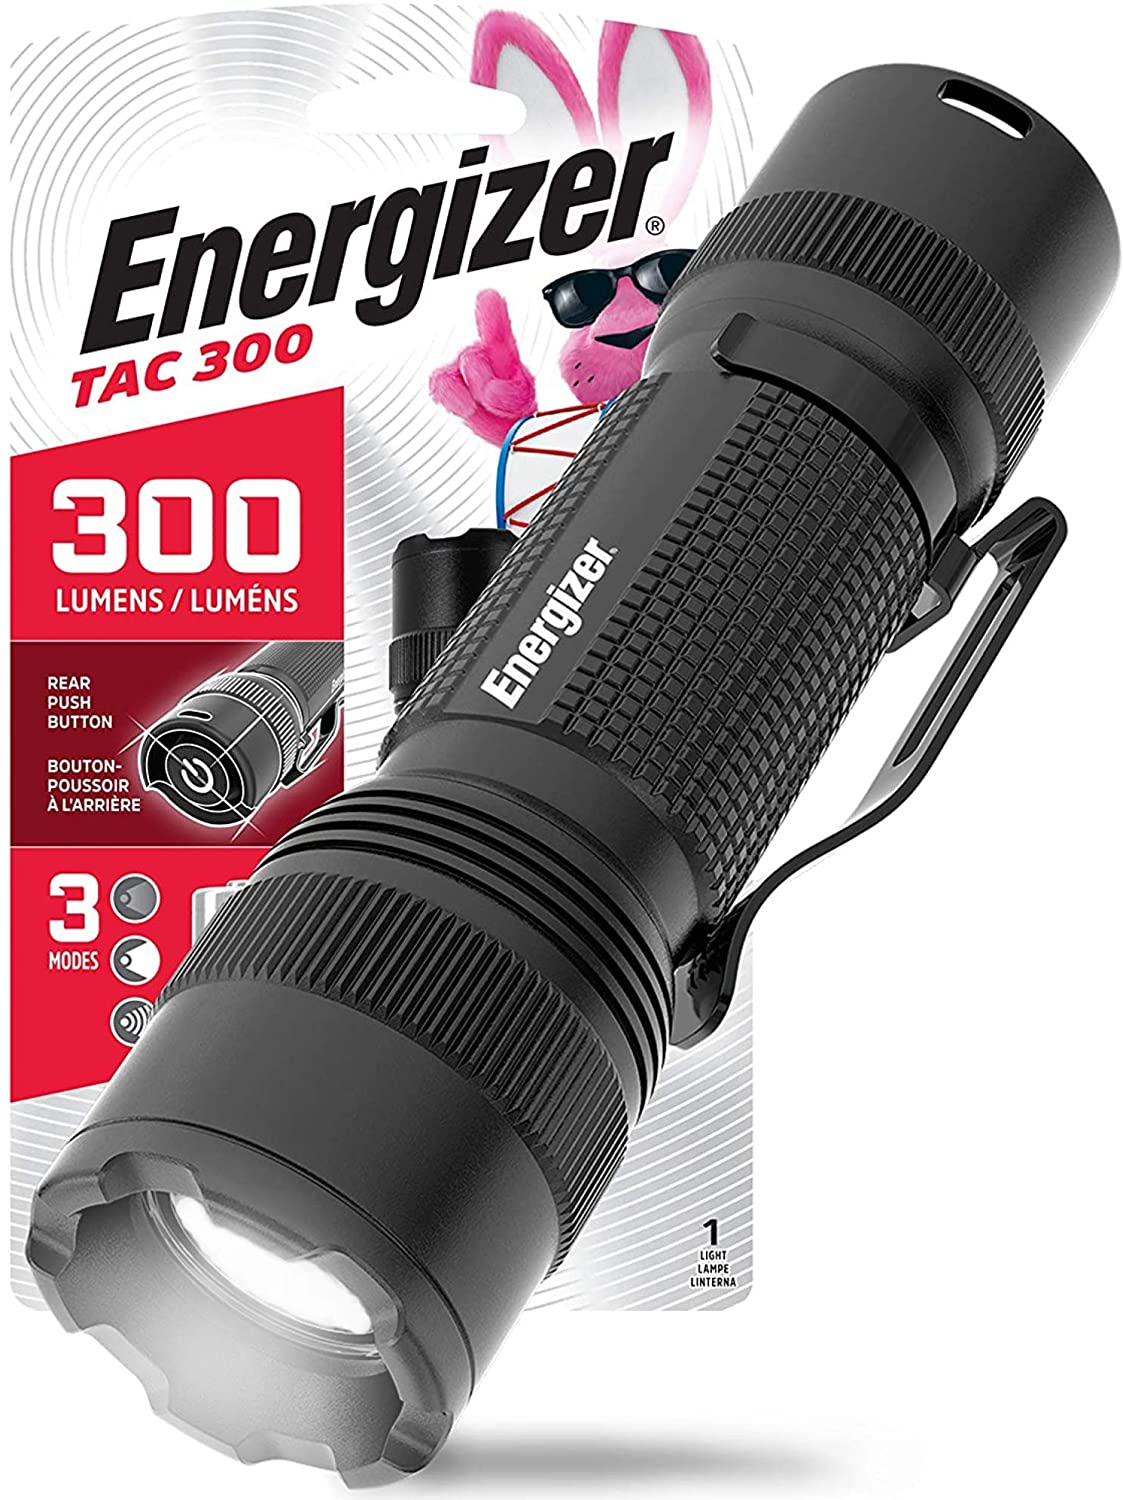 Energizer LED Tactical Flashlights, Rugged Metal Body, IPX4 Water Resistant Flash Lights, High Lumens, Built for Camping, Outdoors, Emergency, Batteries Included